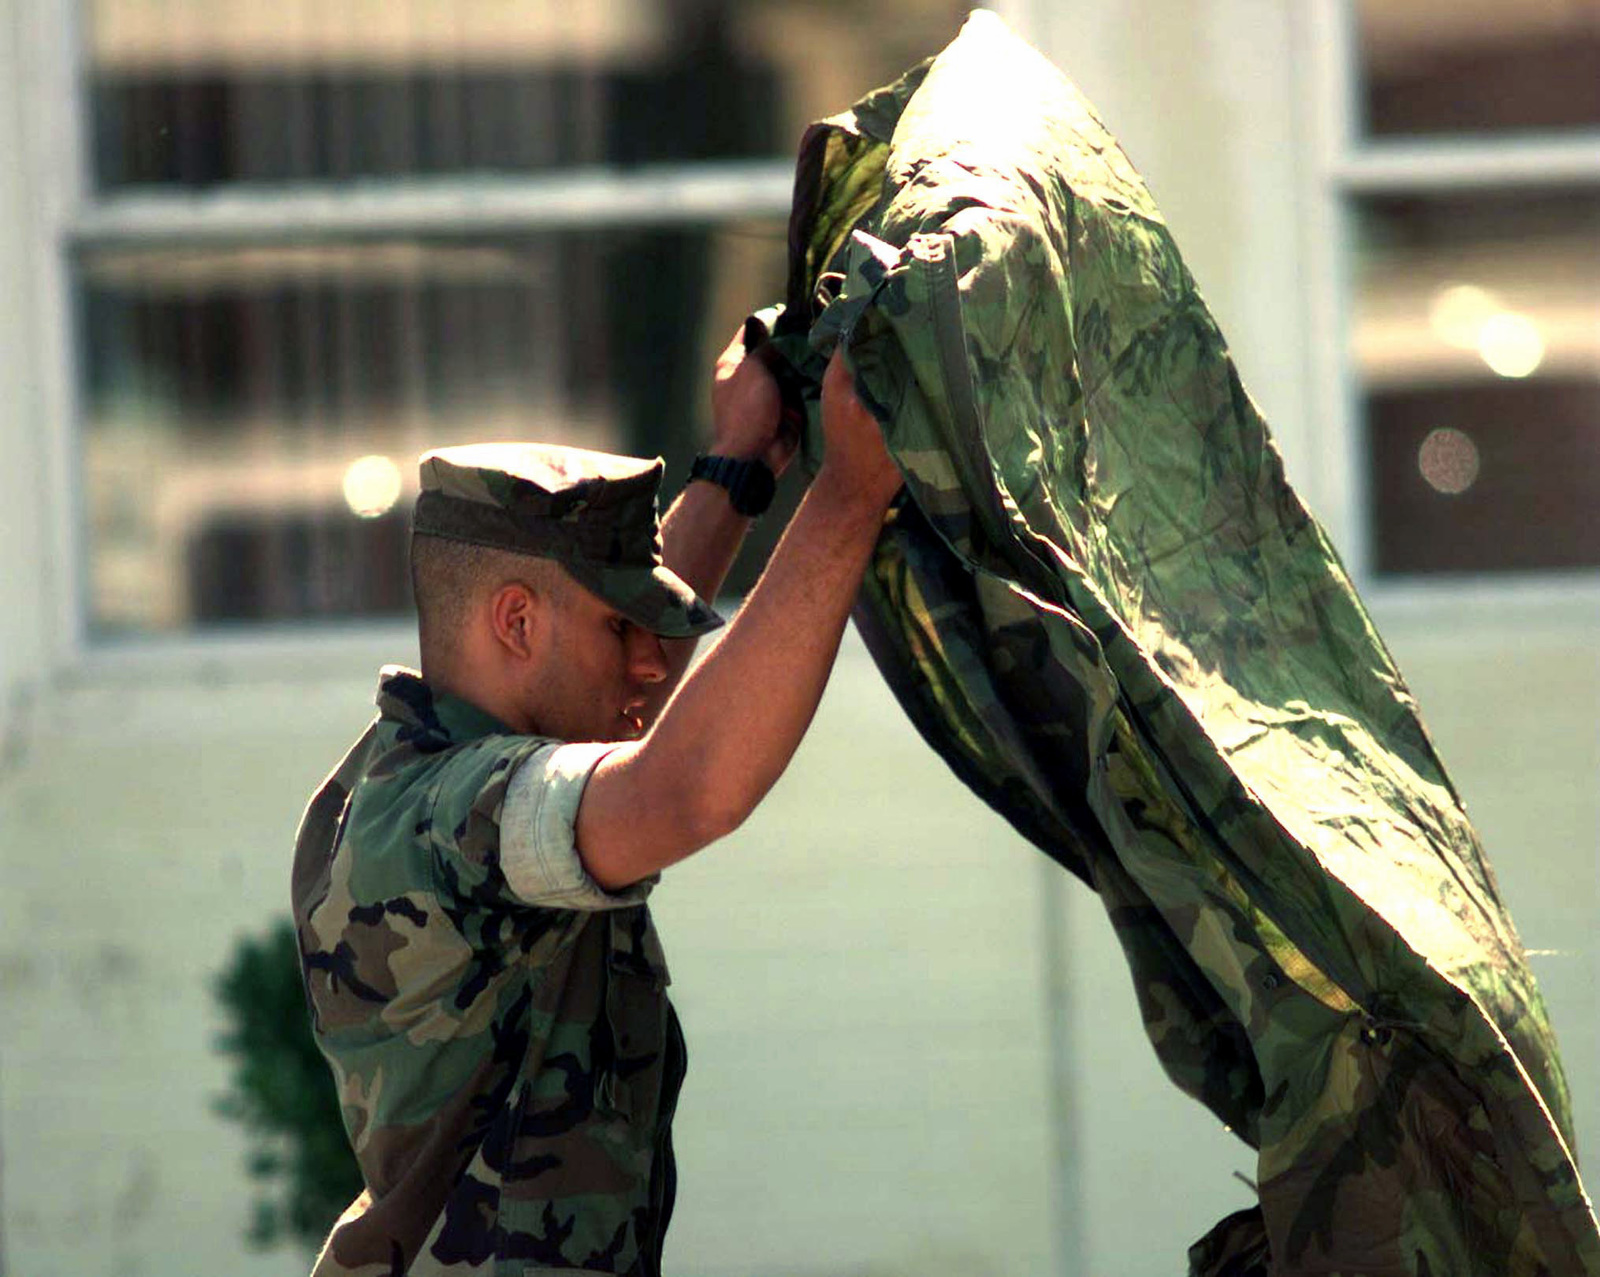 A Marine from first Marine Regiment HQ Company shakes the dirt from his poncho liner prior to reporting in from Camp Horner, Camp Pendleton, to USS MOUNT VERNON (LSD 39) which is participating in Exercise KERNEL BLITZ '97 off coast of Southern California. KERNEL BLITZ is a bi-annual Commander-in-CHIEF Pacific (CINCPAC) fleet training exercise (FLEETEX) focused on operational/tactical training of Commander, Third Fleet (C3F)/ I Marine Expeditionary Forces (MEF) and Commander, Amphibious Group 3 (CPG-3)/ 1ST Marine Division (MARDIV). KERNEL BLITZ is designed to enhance the training of Sailors and Marines in the complexities of brigade-size amphibious assault operations